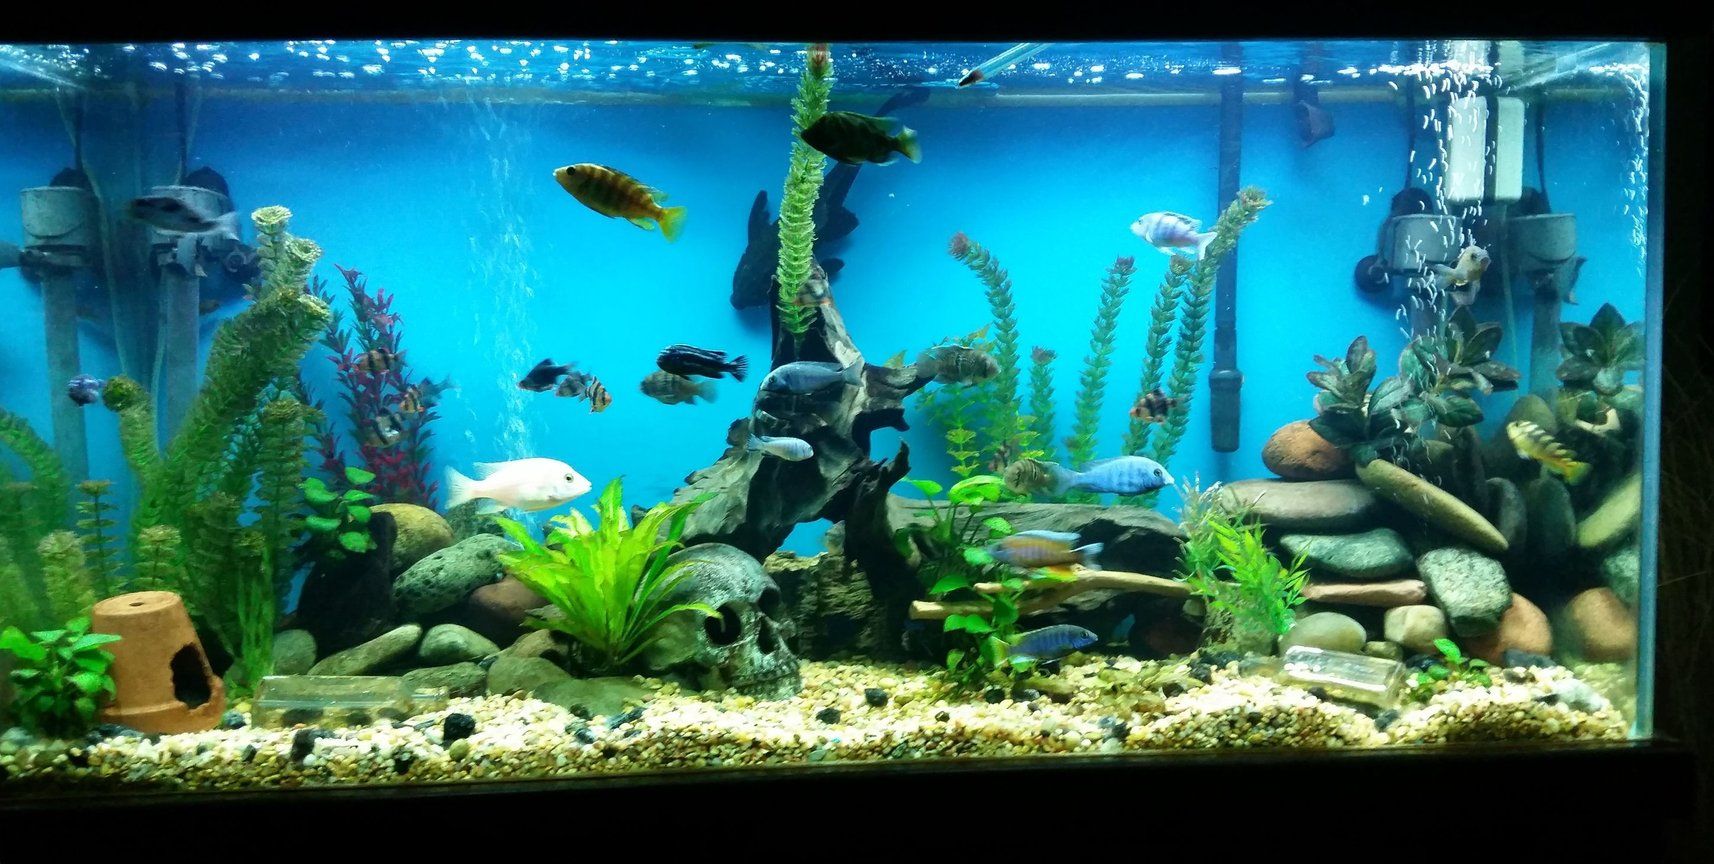 90 gallons freshwater fish tank (mostly fish and non-living decorations)